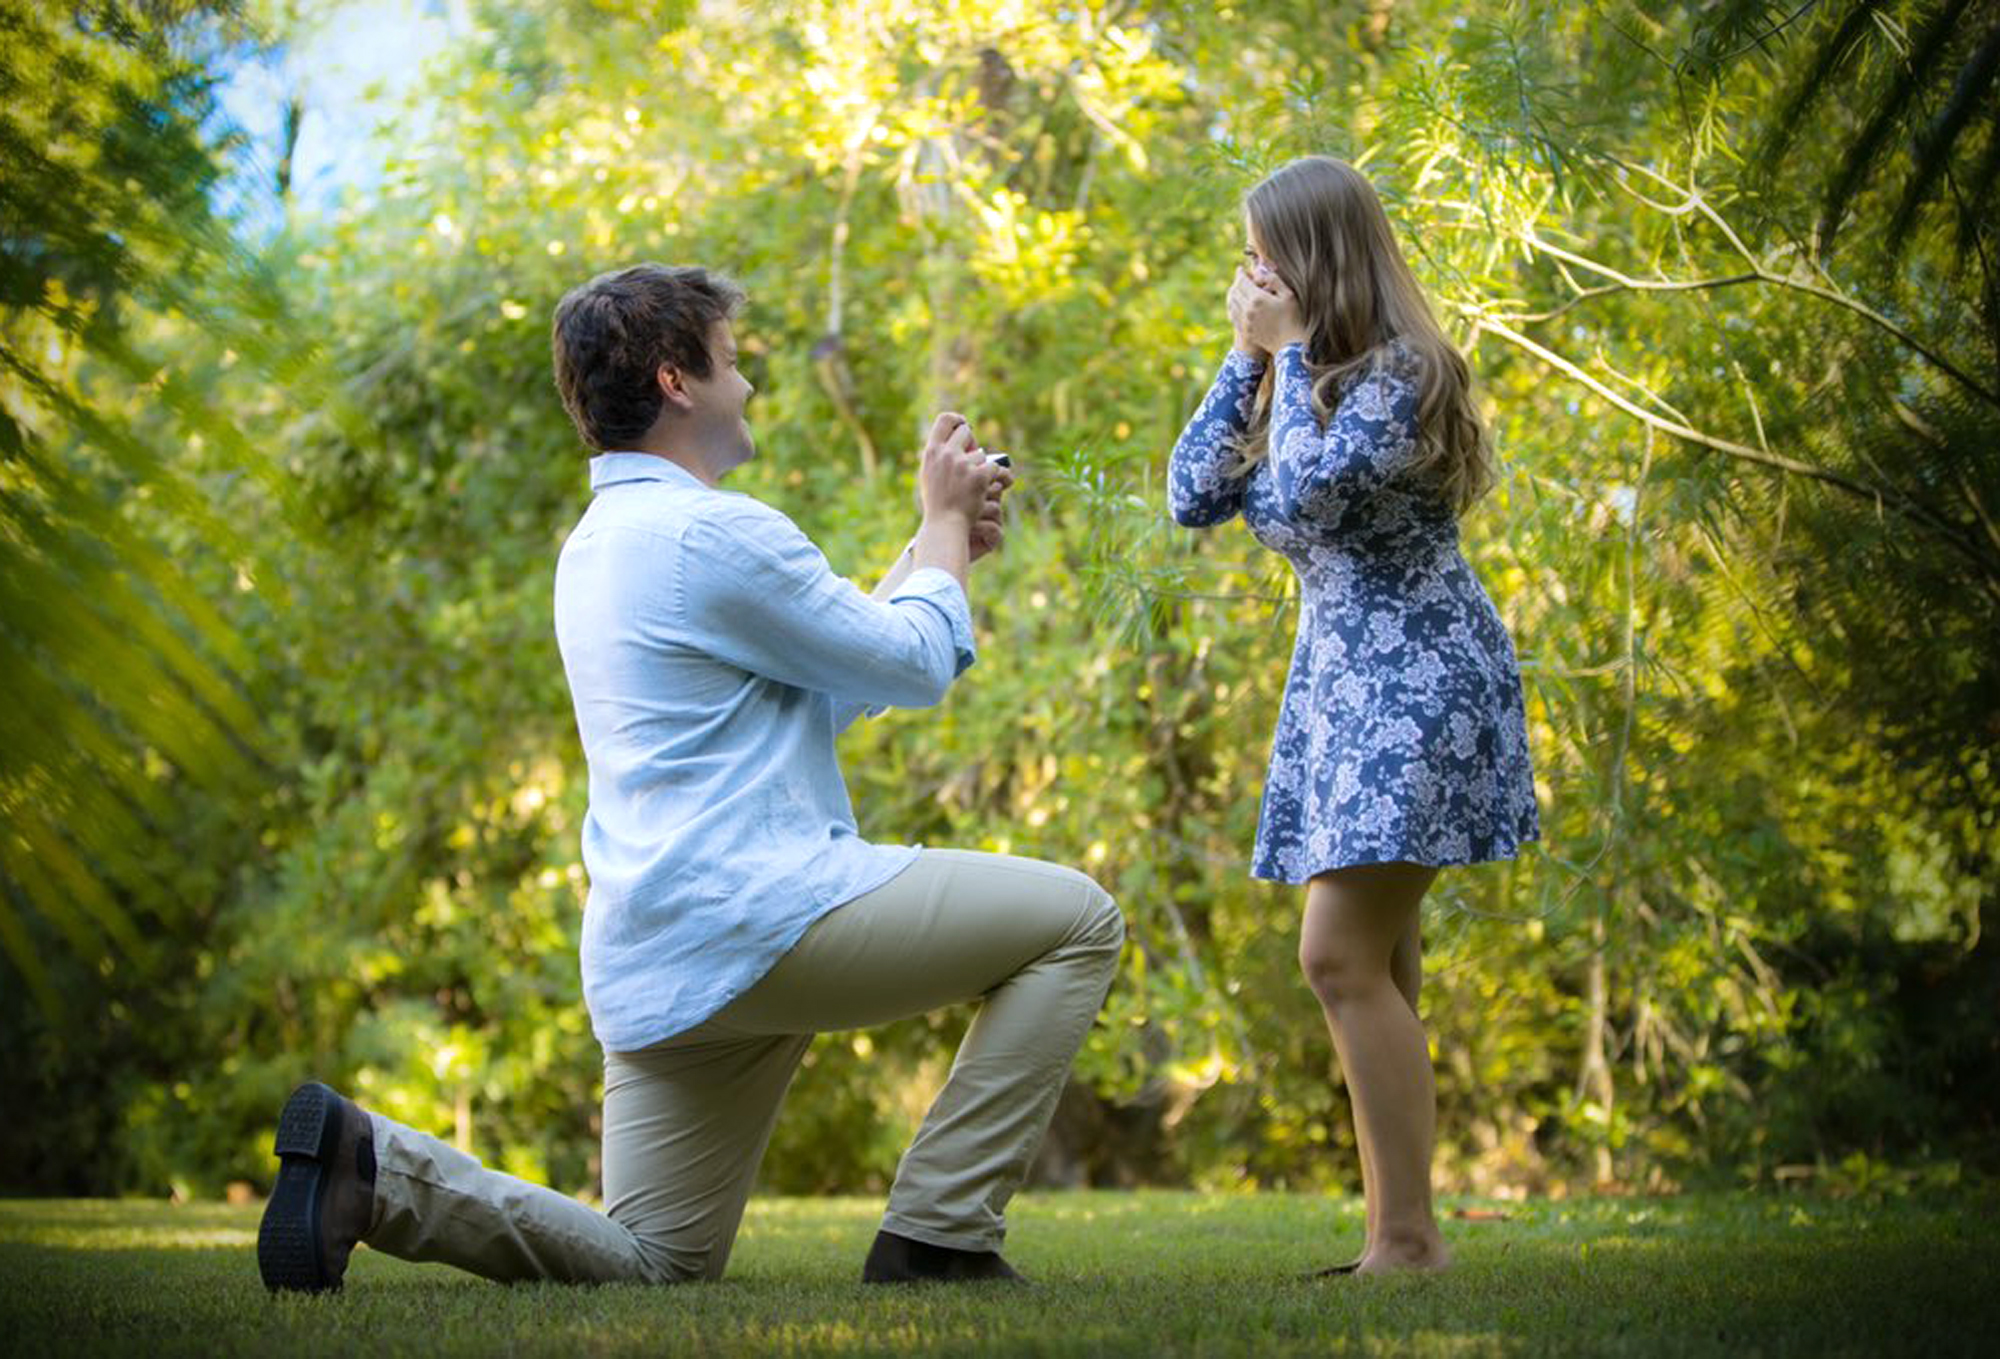 Bindi Irwin Marries Chandler Powell at Australia Zoo: 'Today We Celebrated Life' Image?url=https%3A%2F%2Fstatic.onecms.io%2Fwp-content%2Fuploads%2Fsites%2F20%2F2019%2F07%2Fbindi-irwin-1-2000a